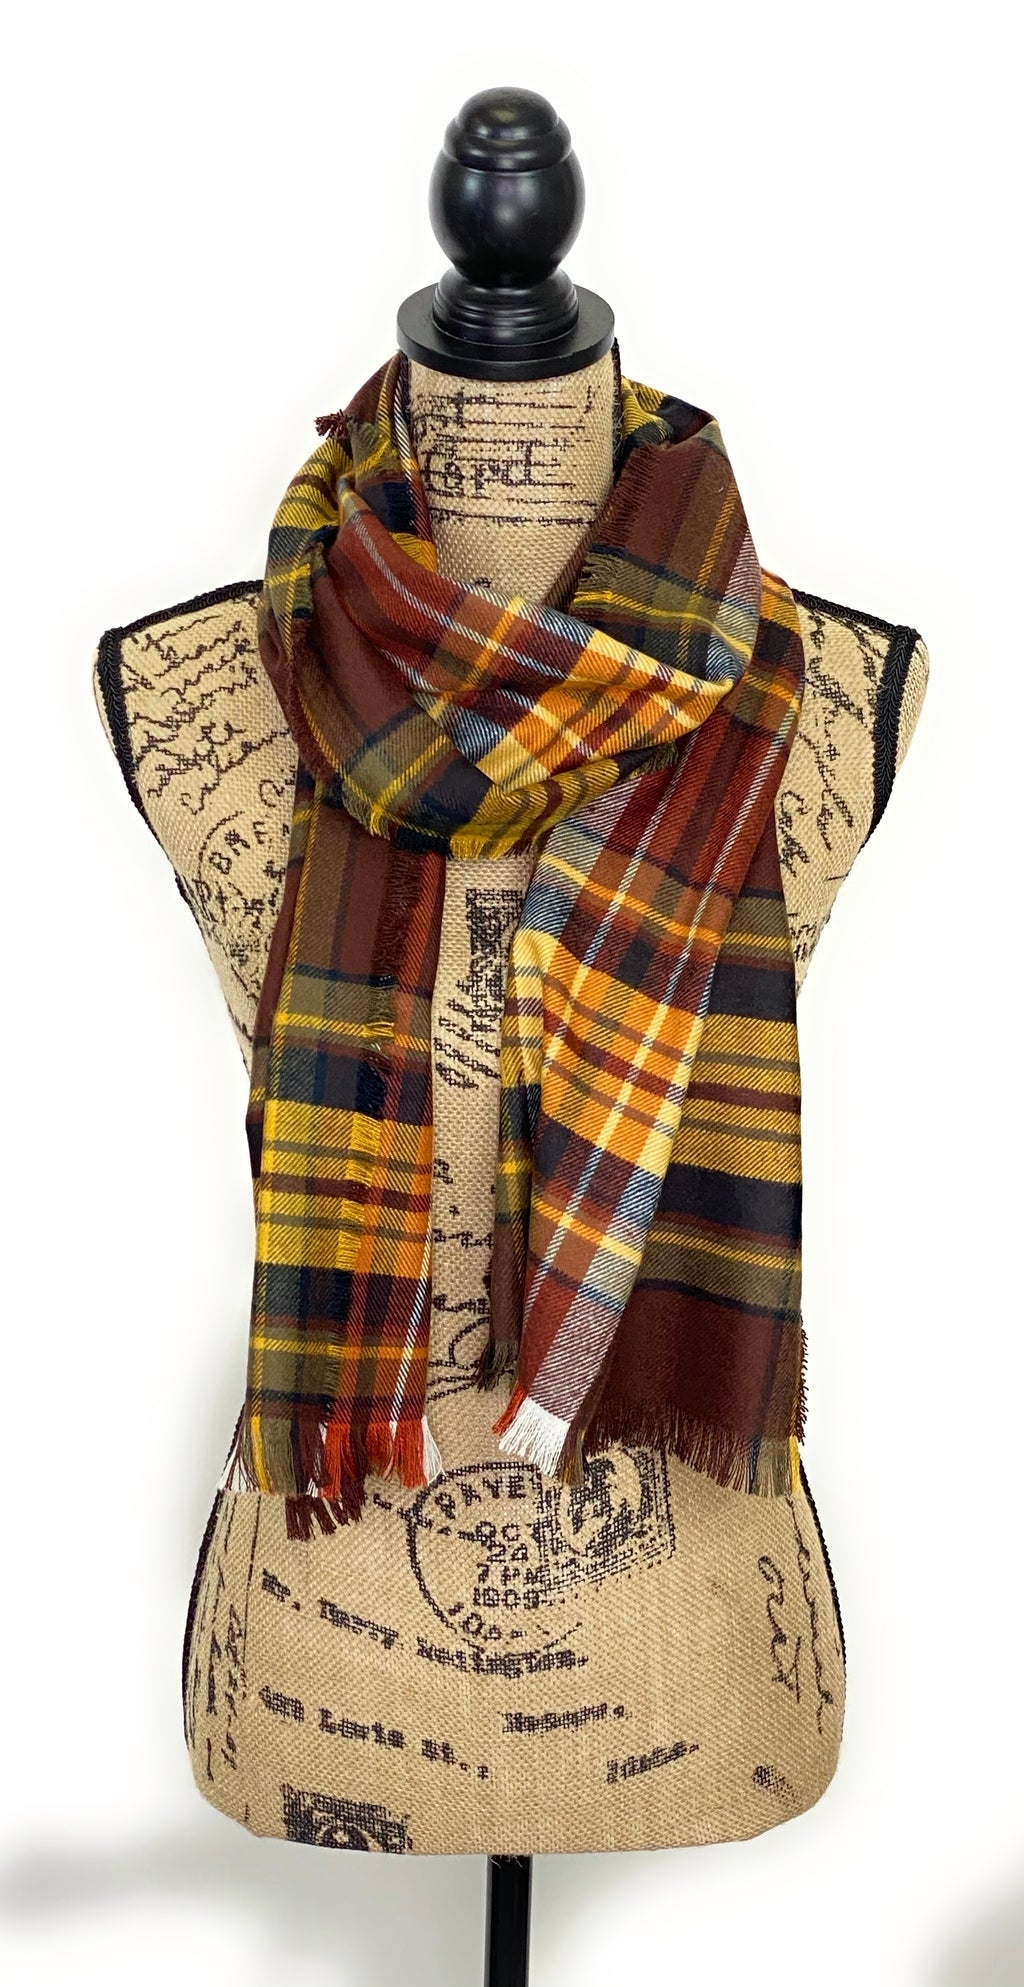 NEW Fall Colors of Warm Brown, Yellow, White, Black, and Smokey Gray Plaid Acrylic Scarf